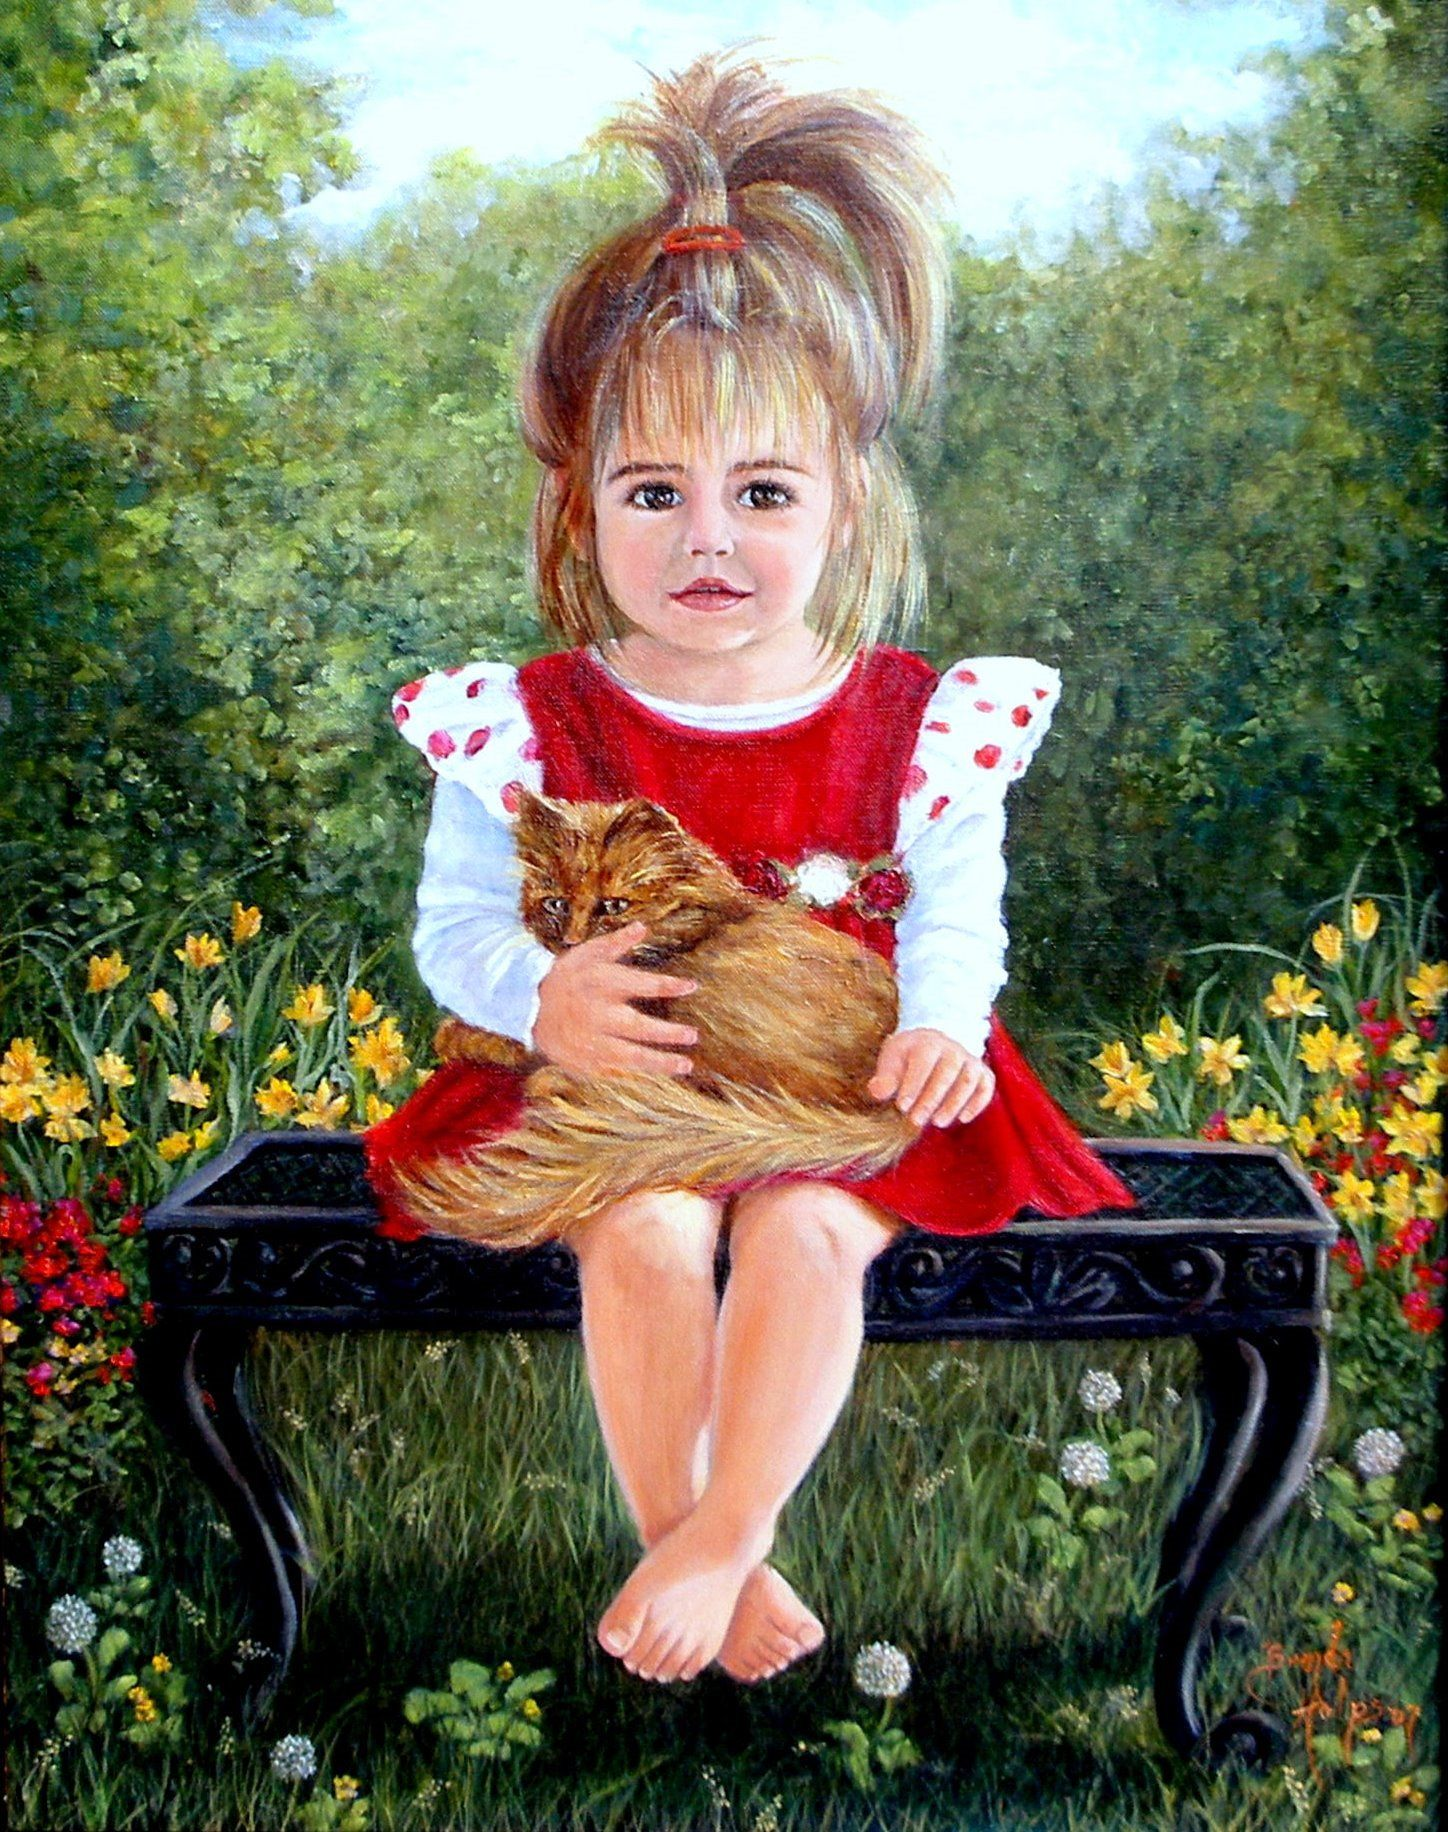 famous painting of children | Home Page / The Gallery of Children's Portraits / The Gallery of Pet ... | Paintings of Children (and Drawings) | Painting for kids, Artists for kids, Artist painting